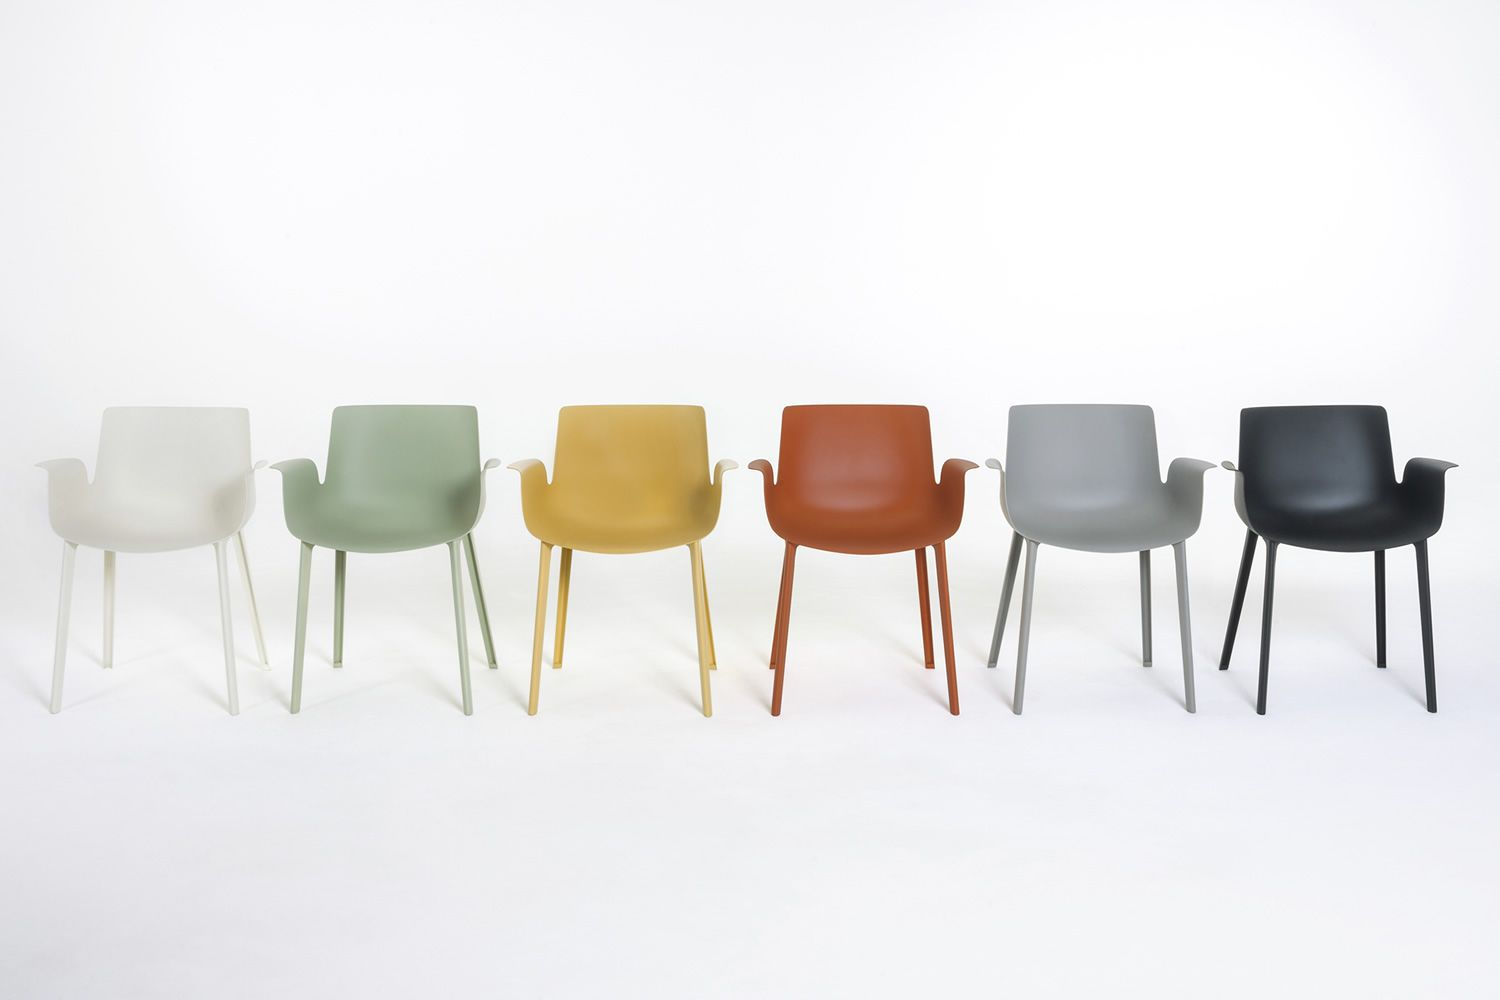 Piuma kartell design chair in technopolymer available in